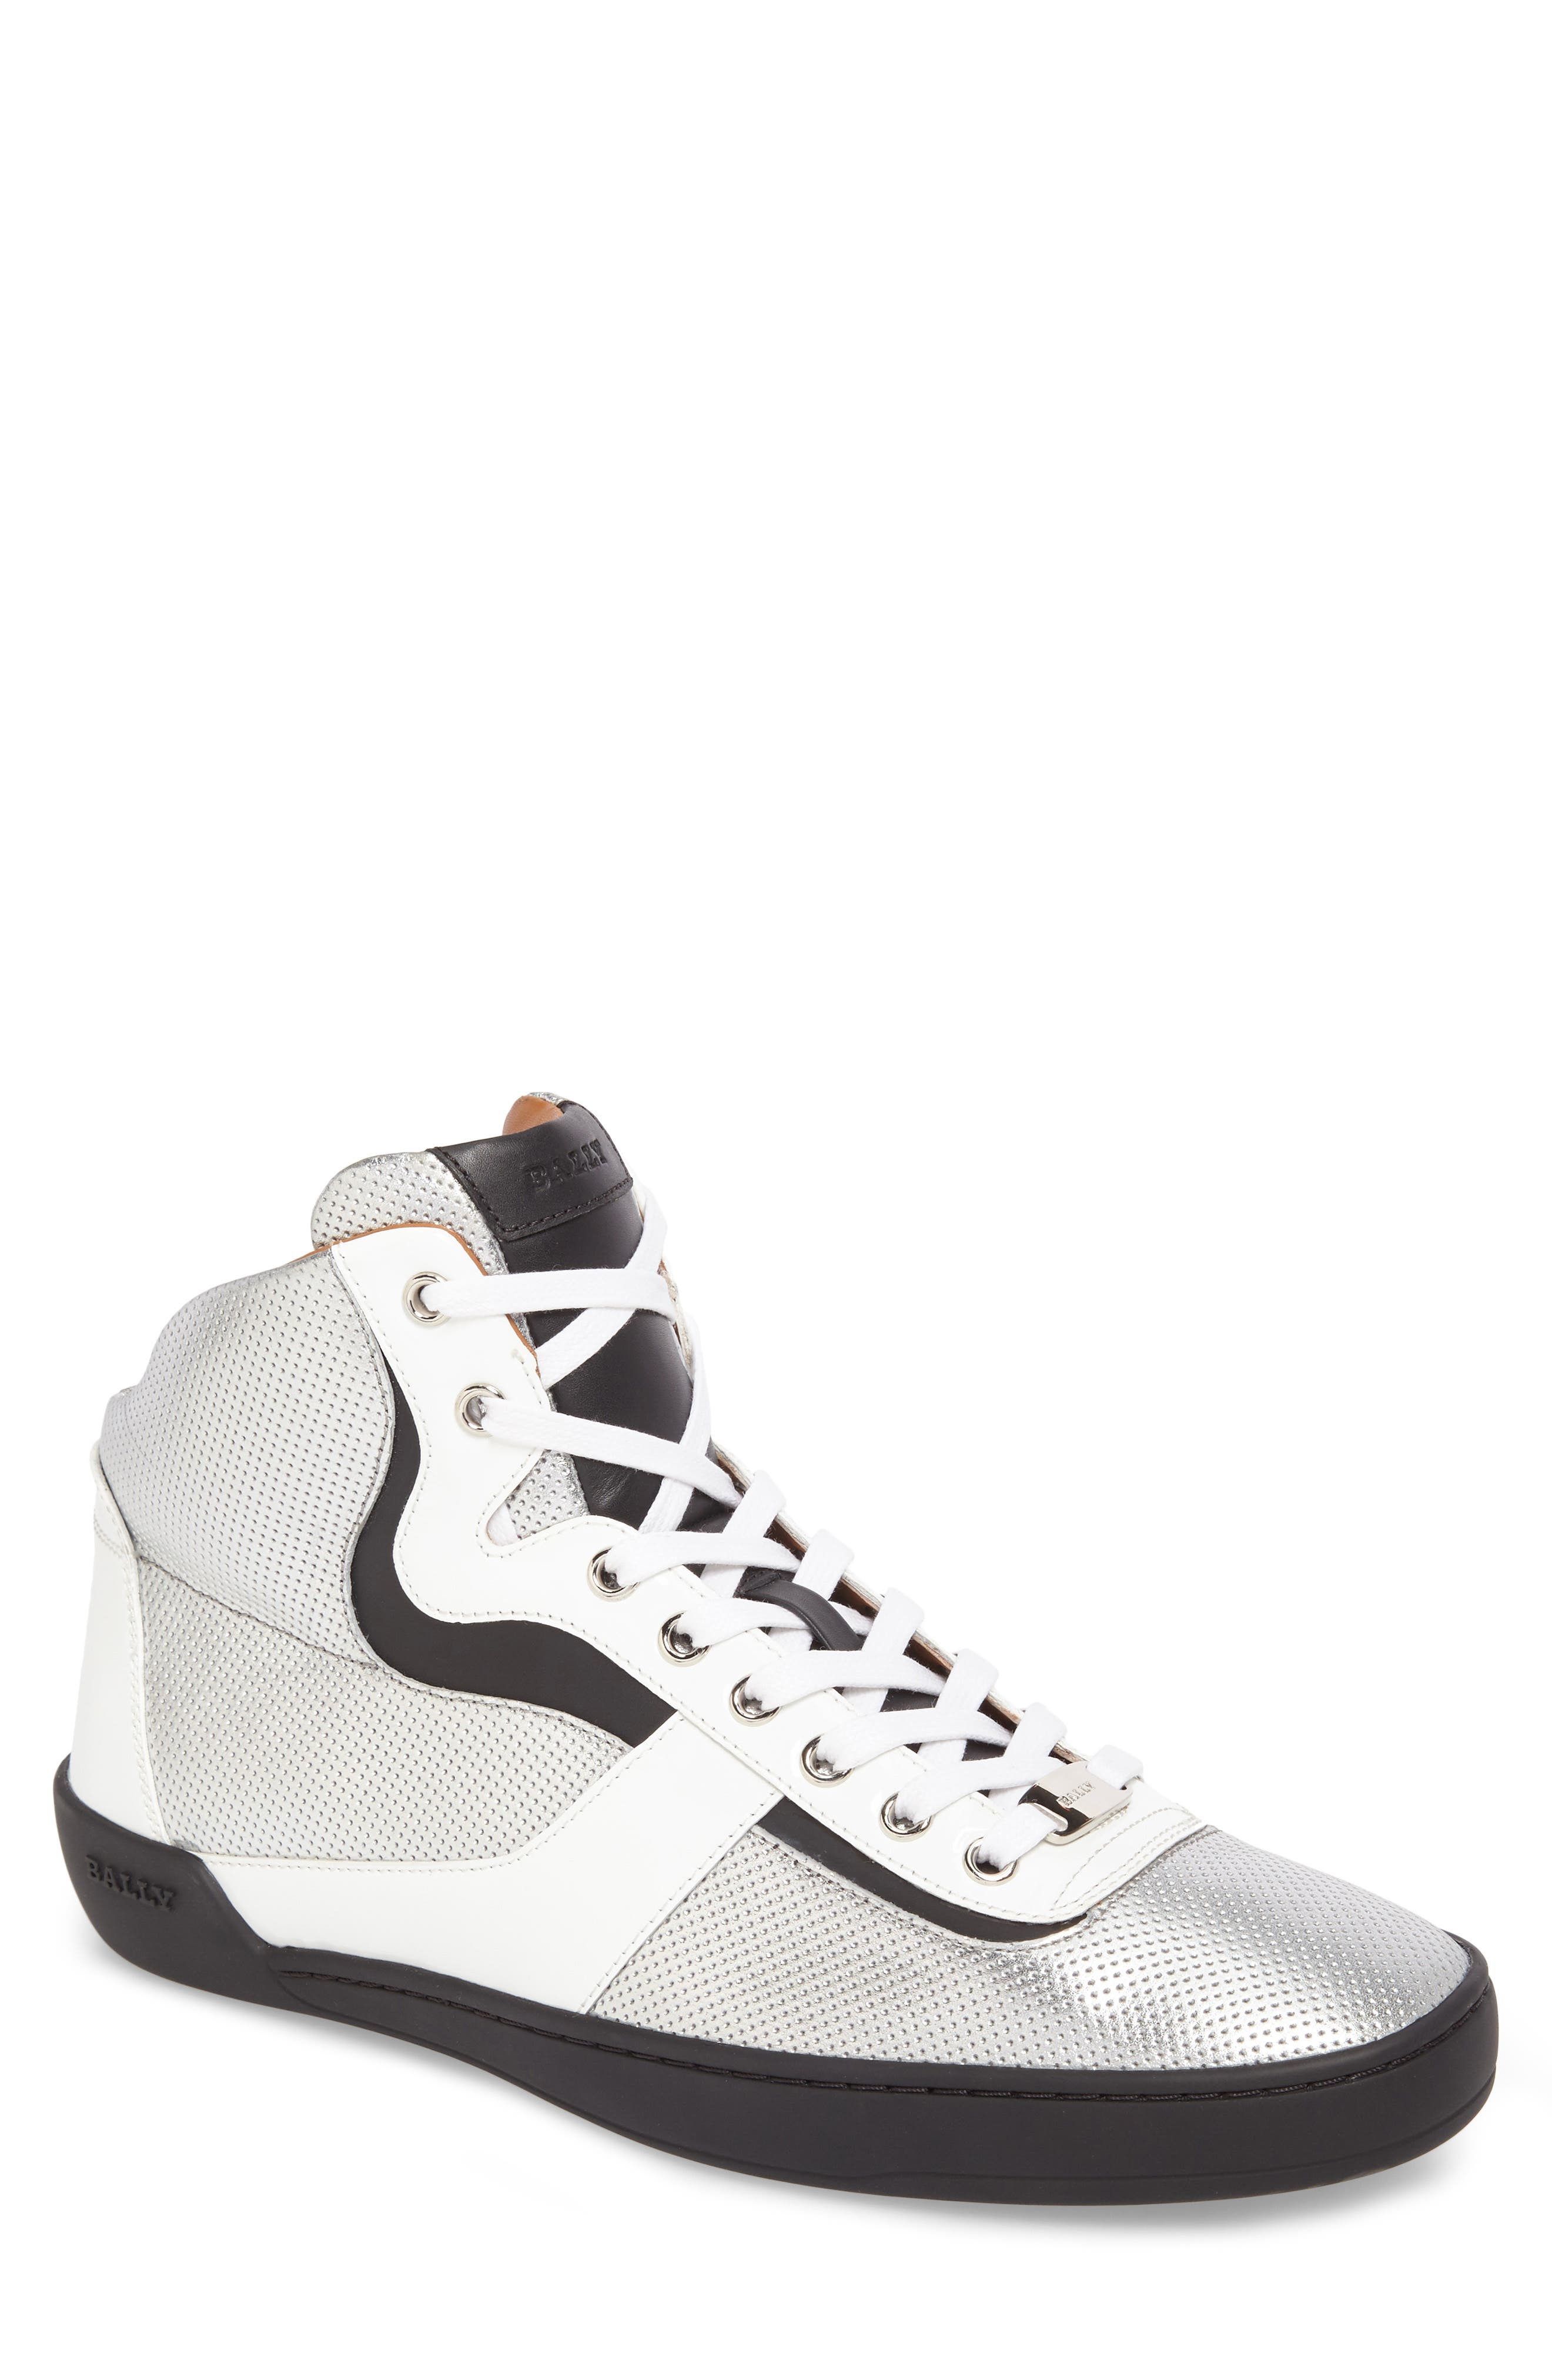 Eroy High Top Sneaker,                         Main,                         color, 049